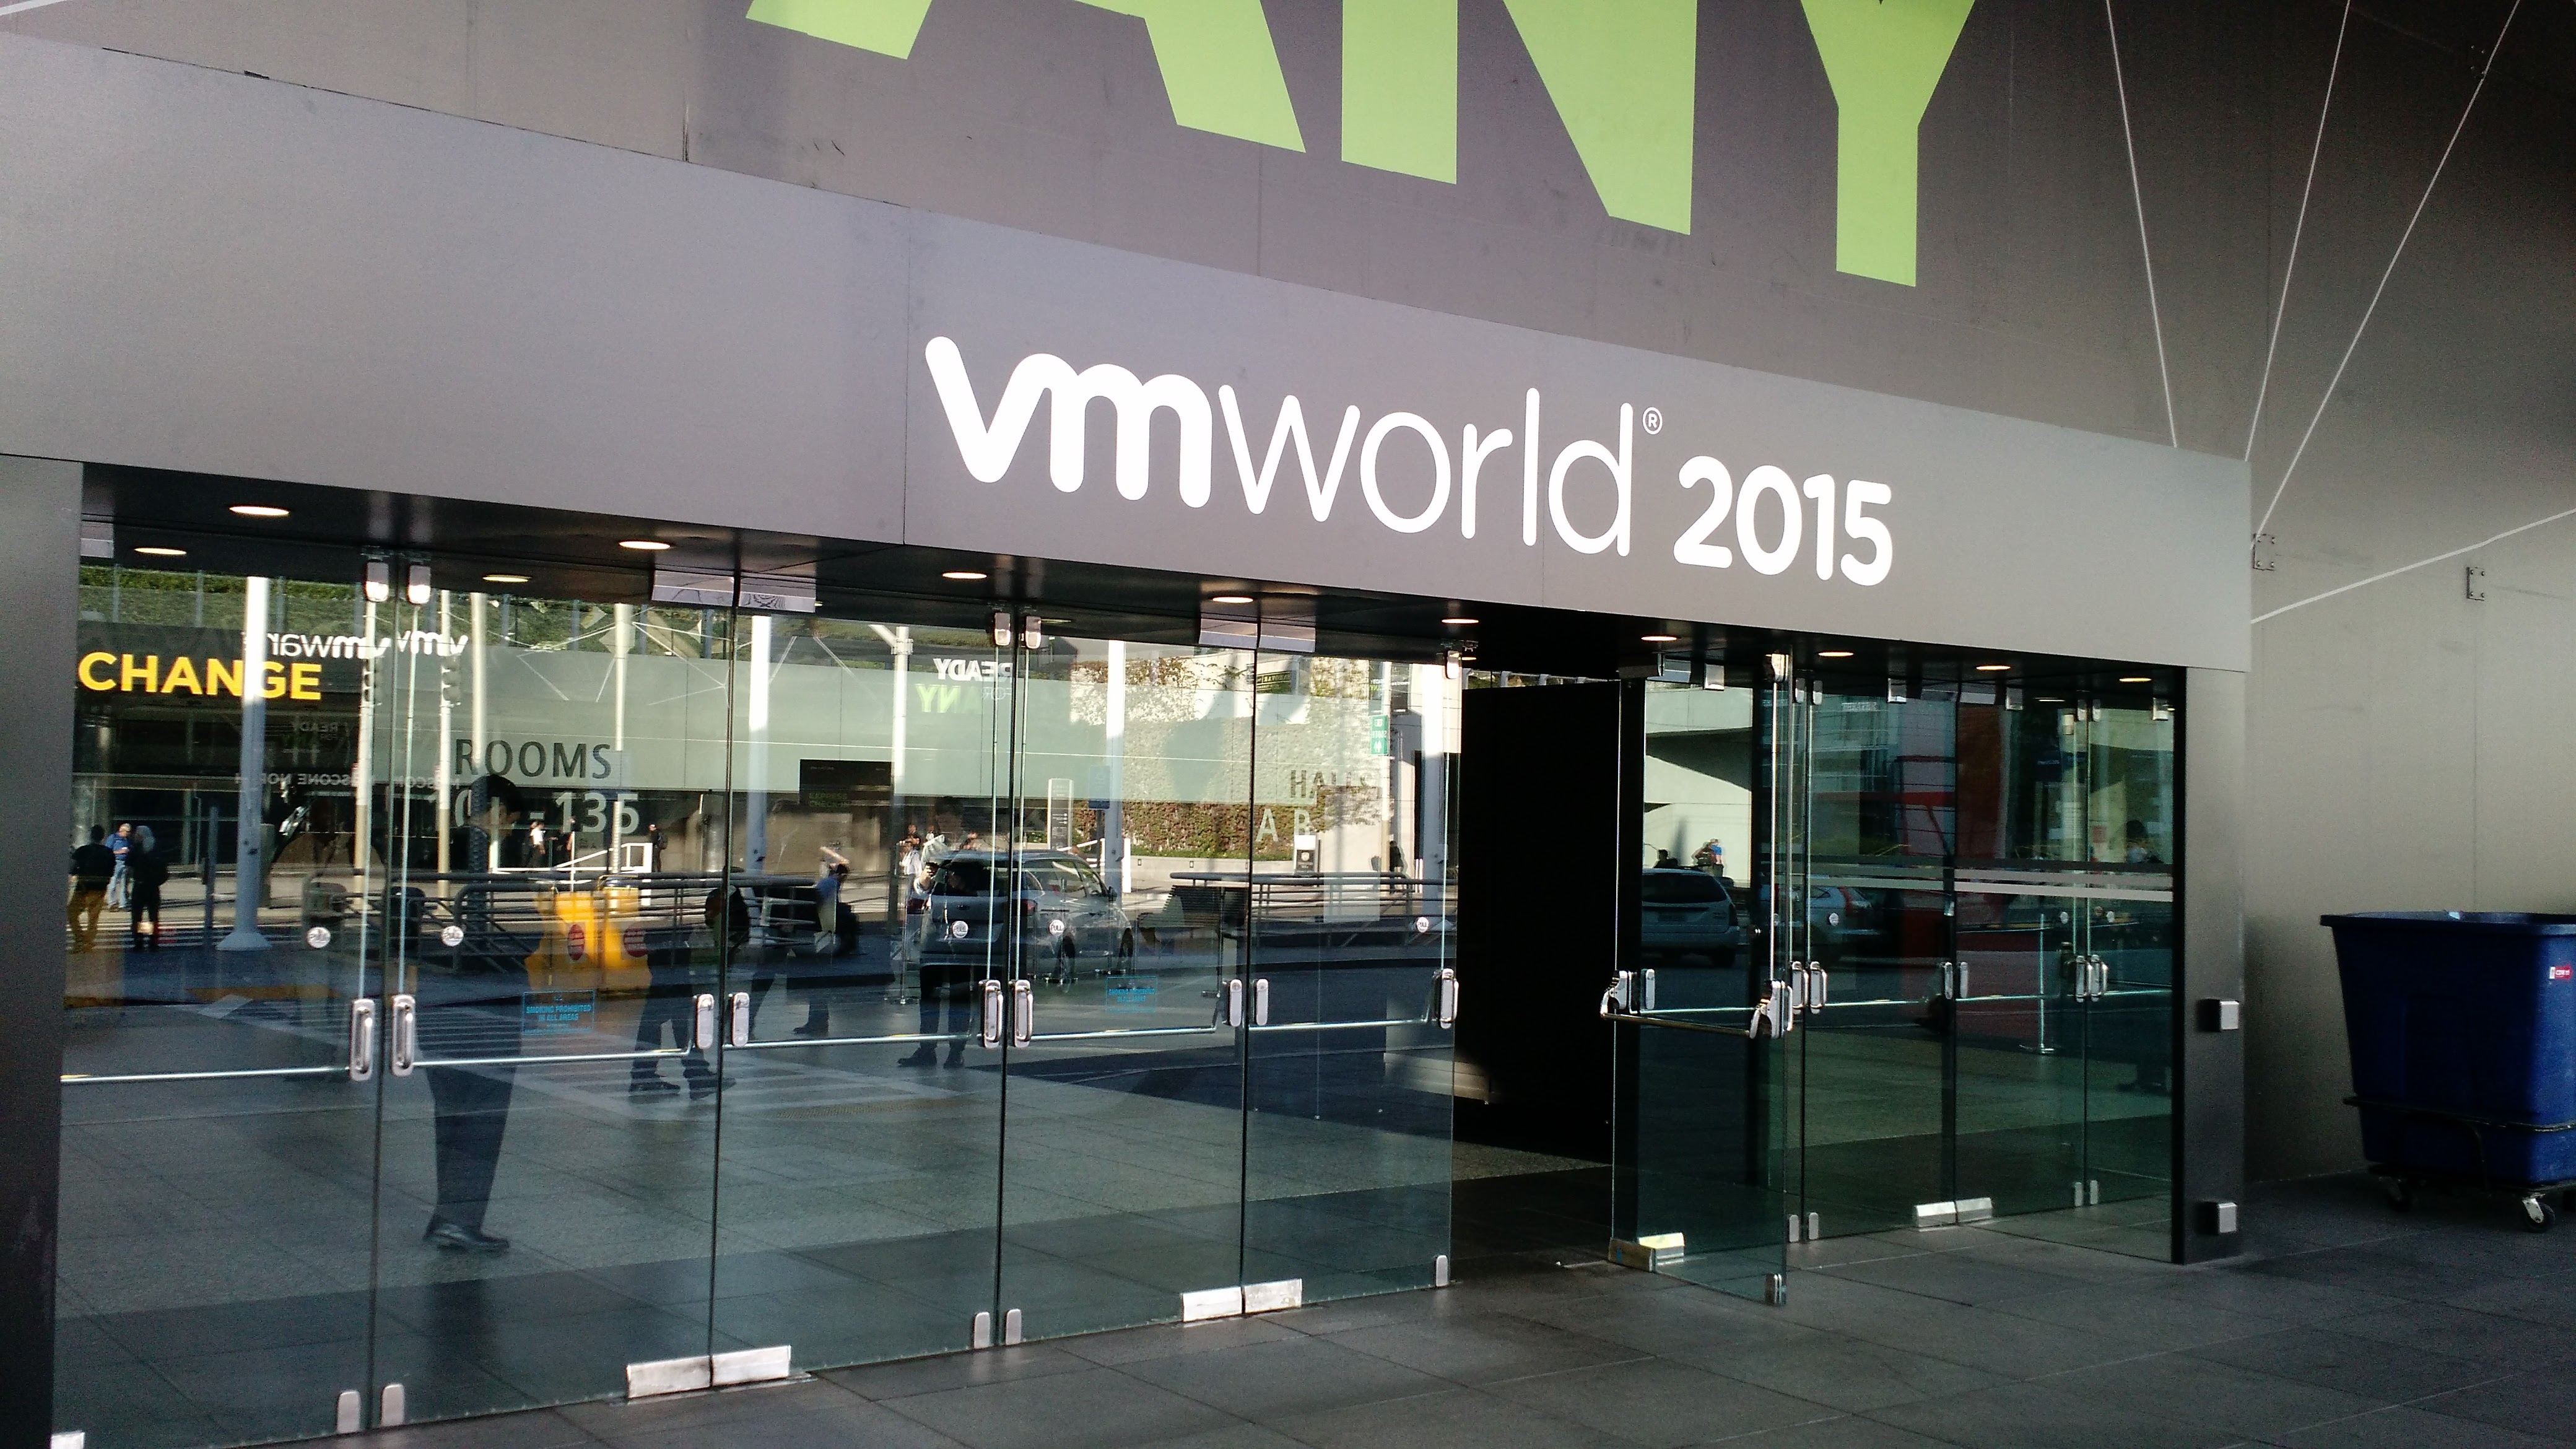 At VMware's 2015 VMworld conference in San Francisco.